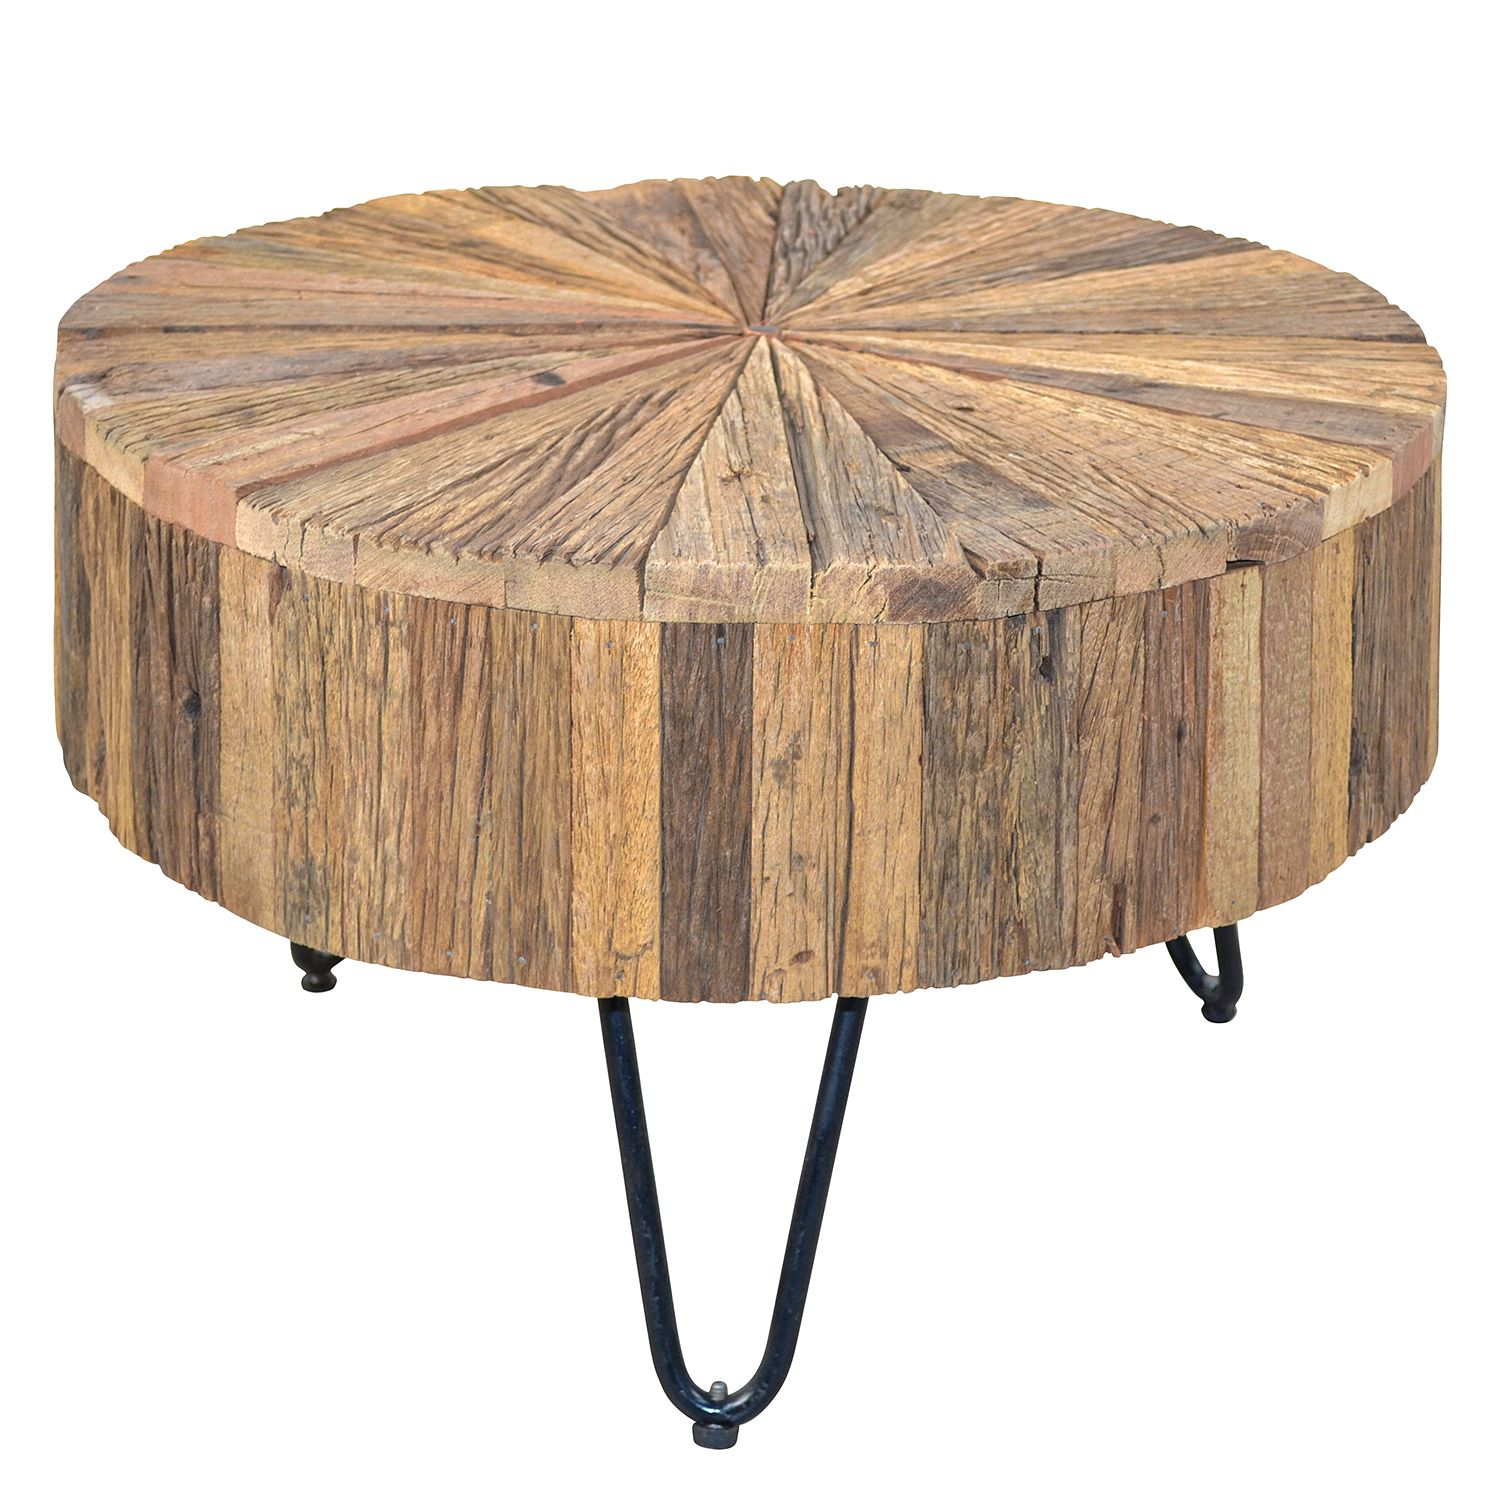 Table basse Yakamia